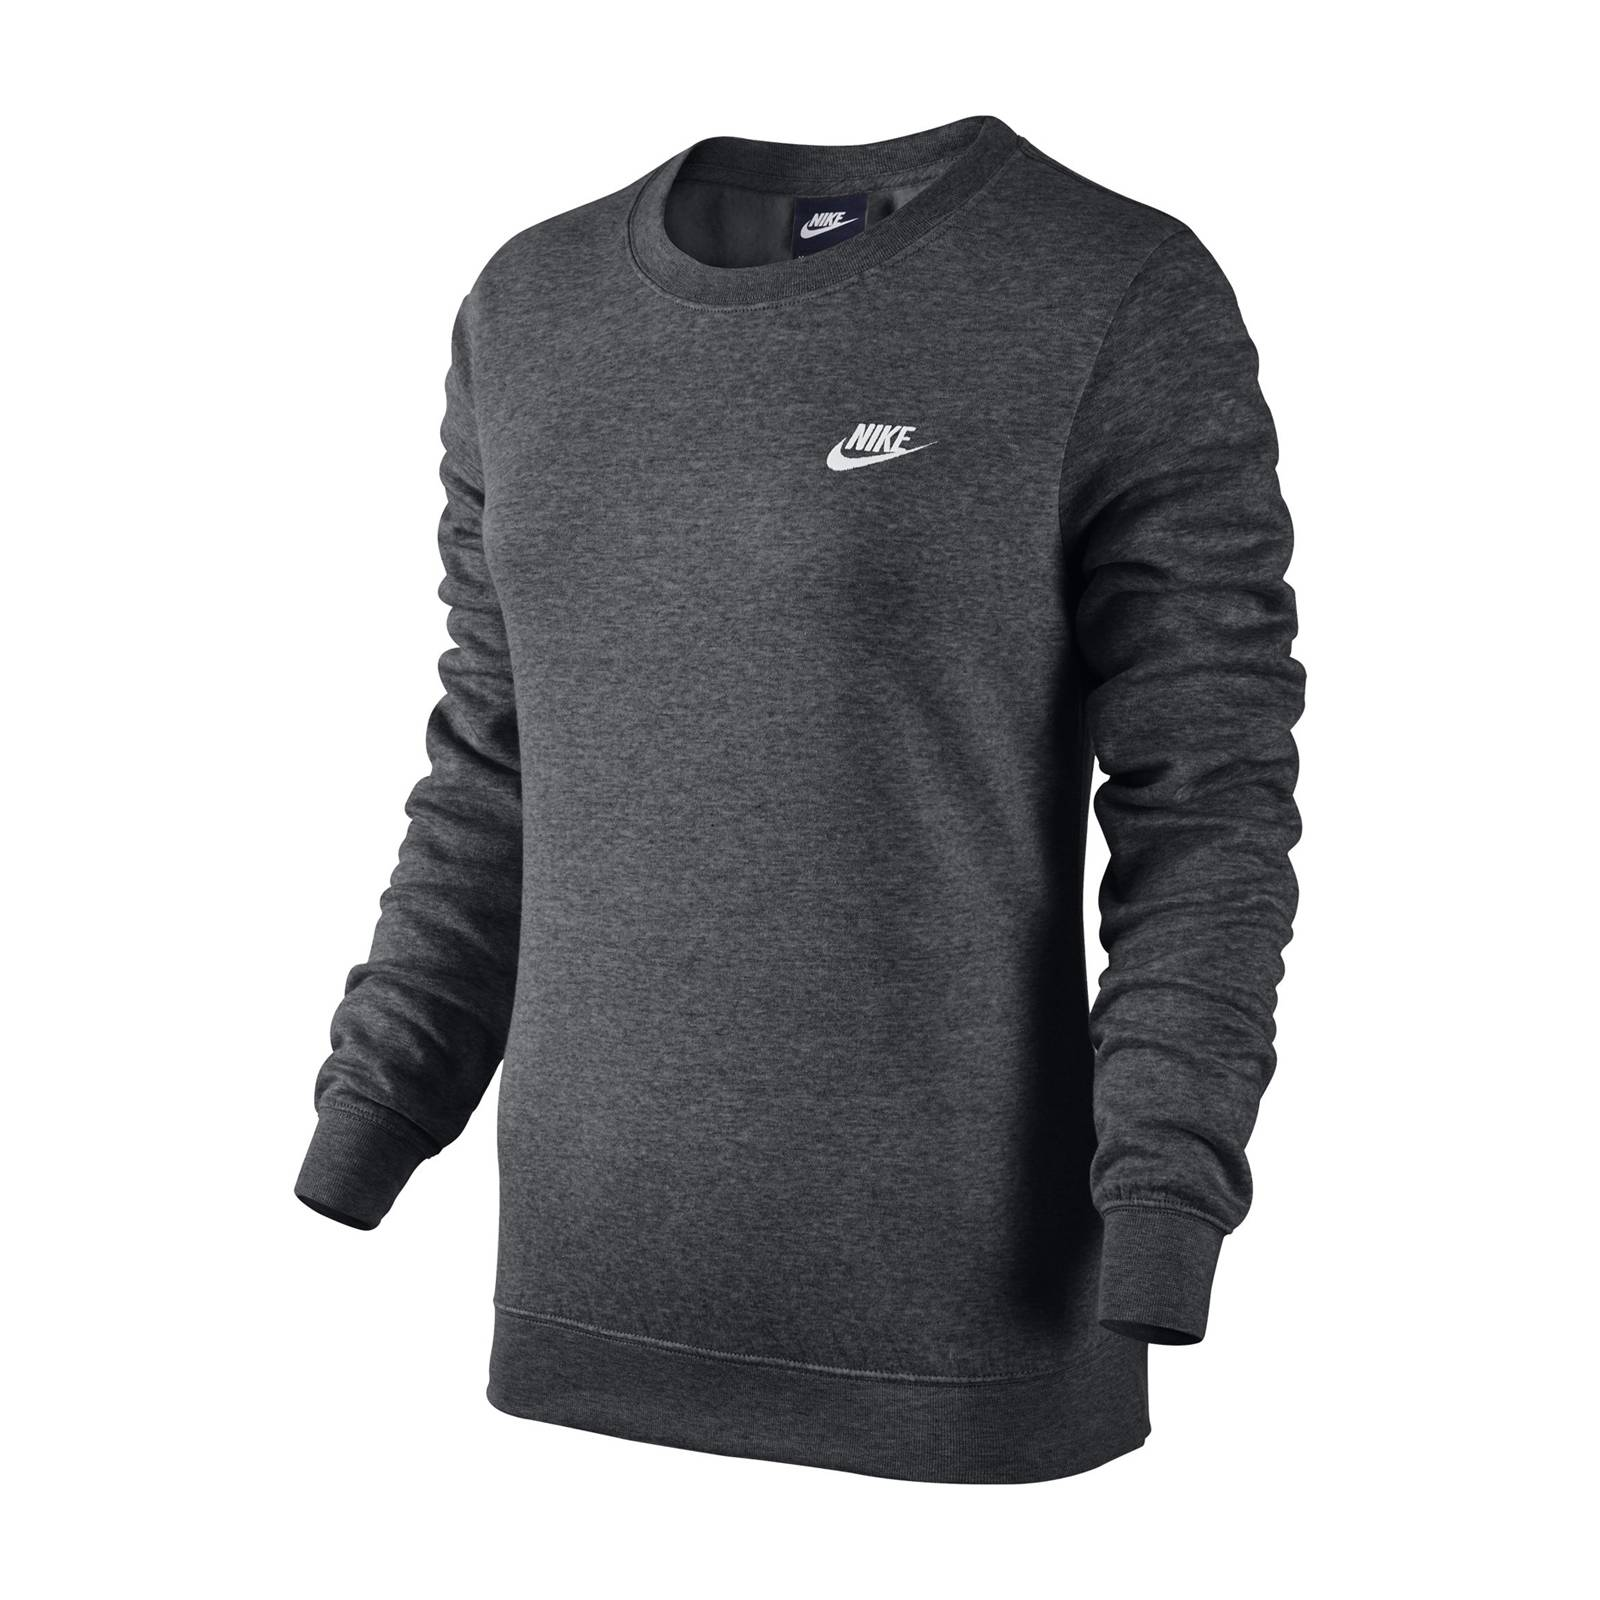 nike sweat shirt gris fonc brandalley. Black Bedroom Furniture Sets. Home Design Ideas